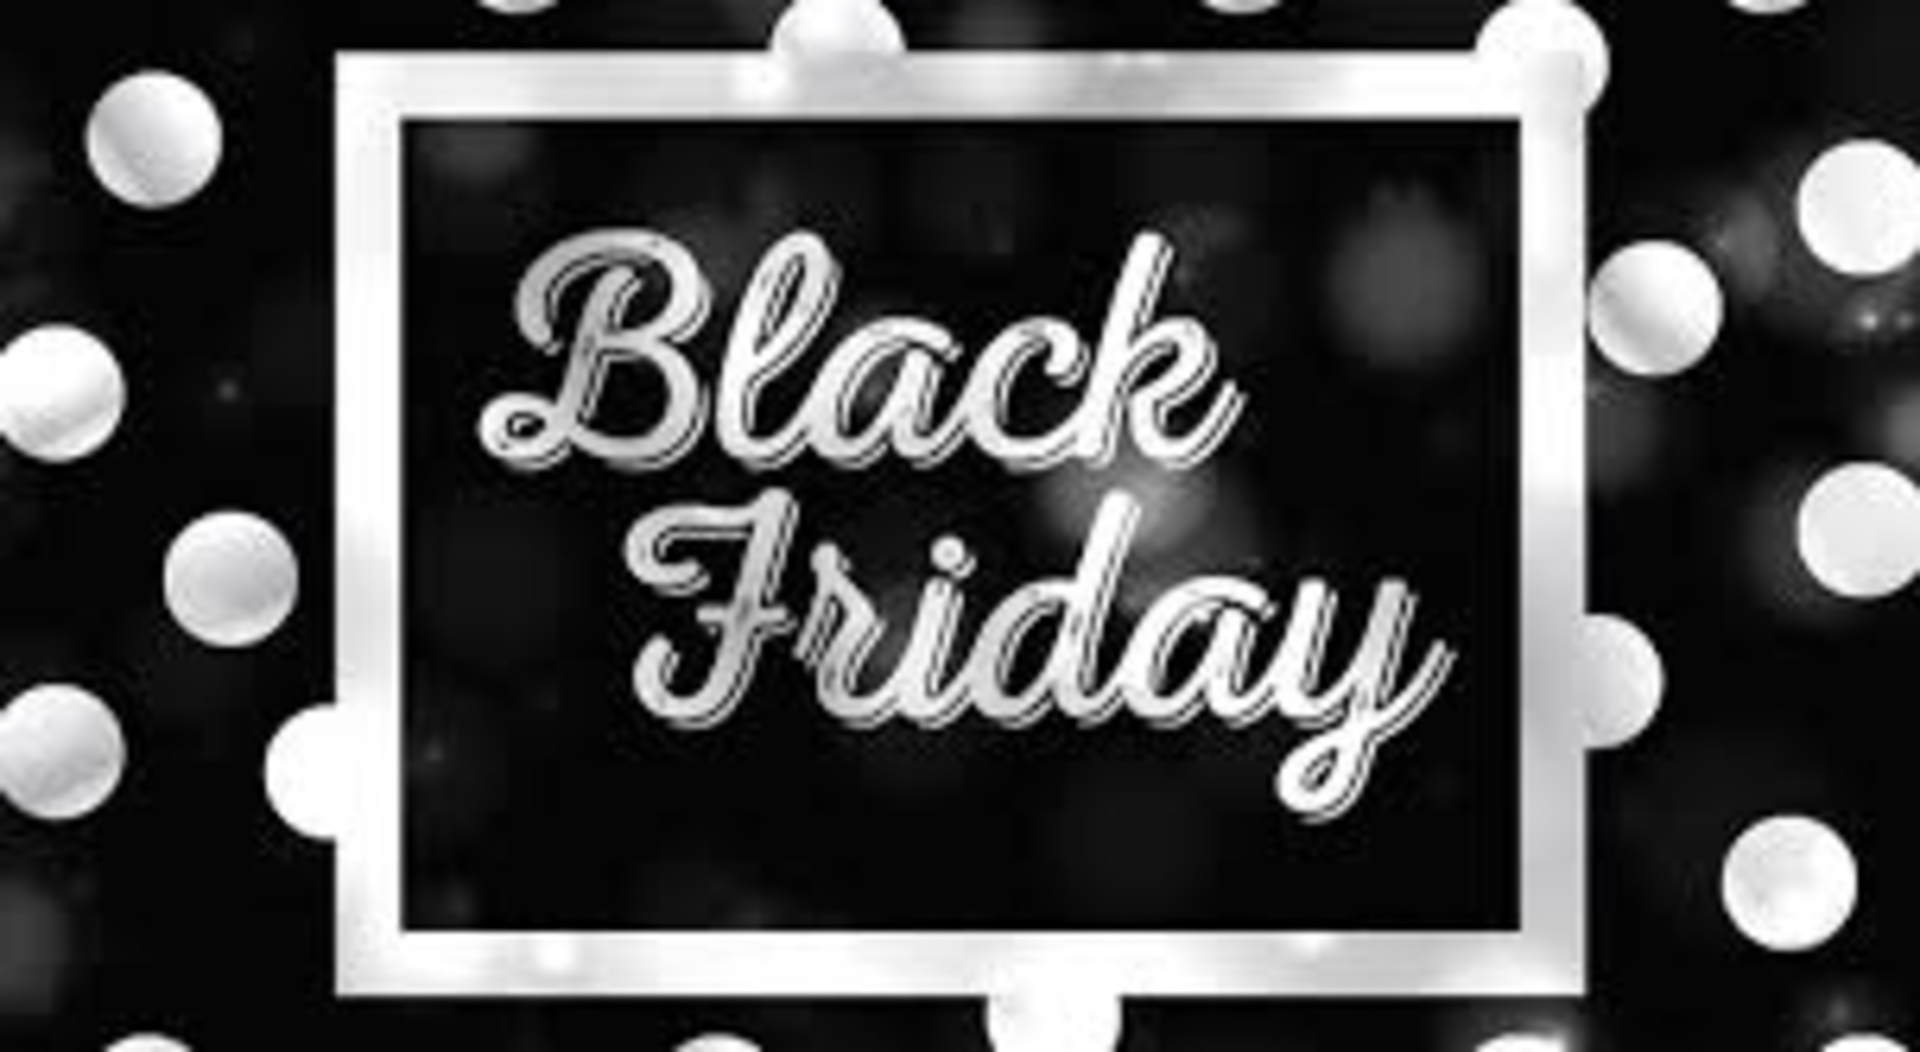 Black Friday Deals - images (3)